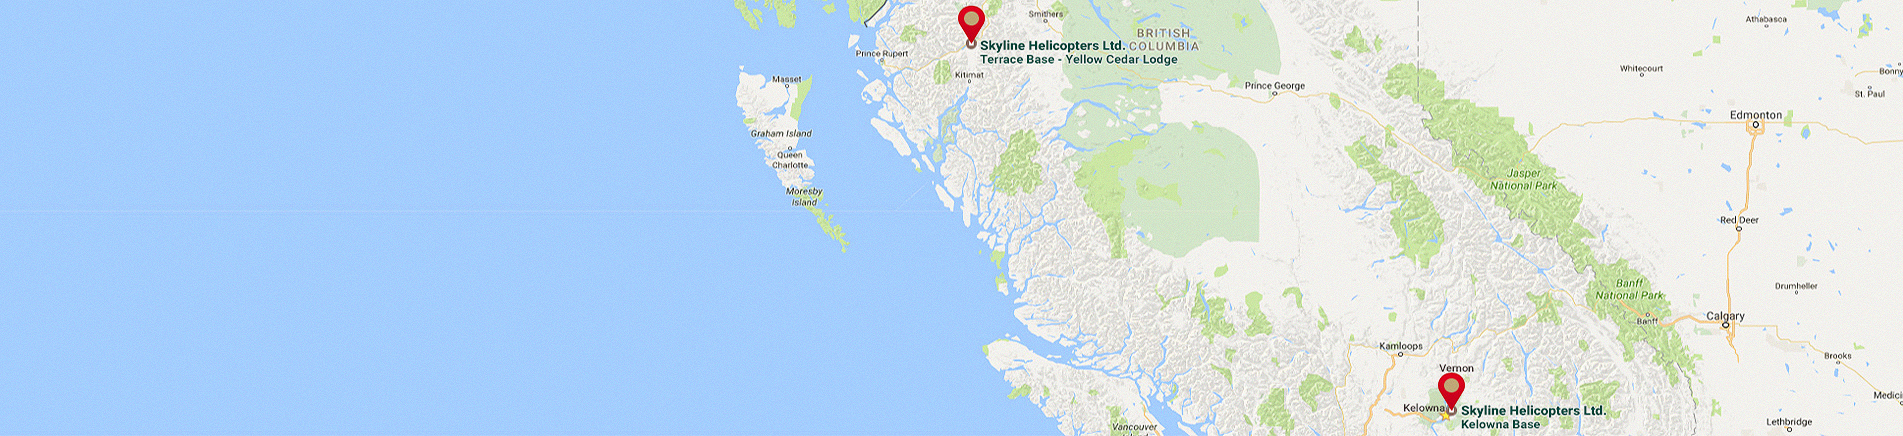 Skyline Helicopters heli skiing holidays hydro forestry tours Kelowna Terrace BC Map